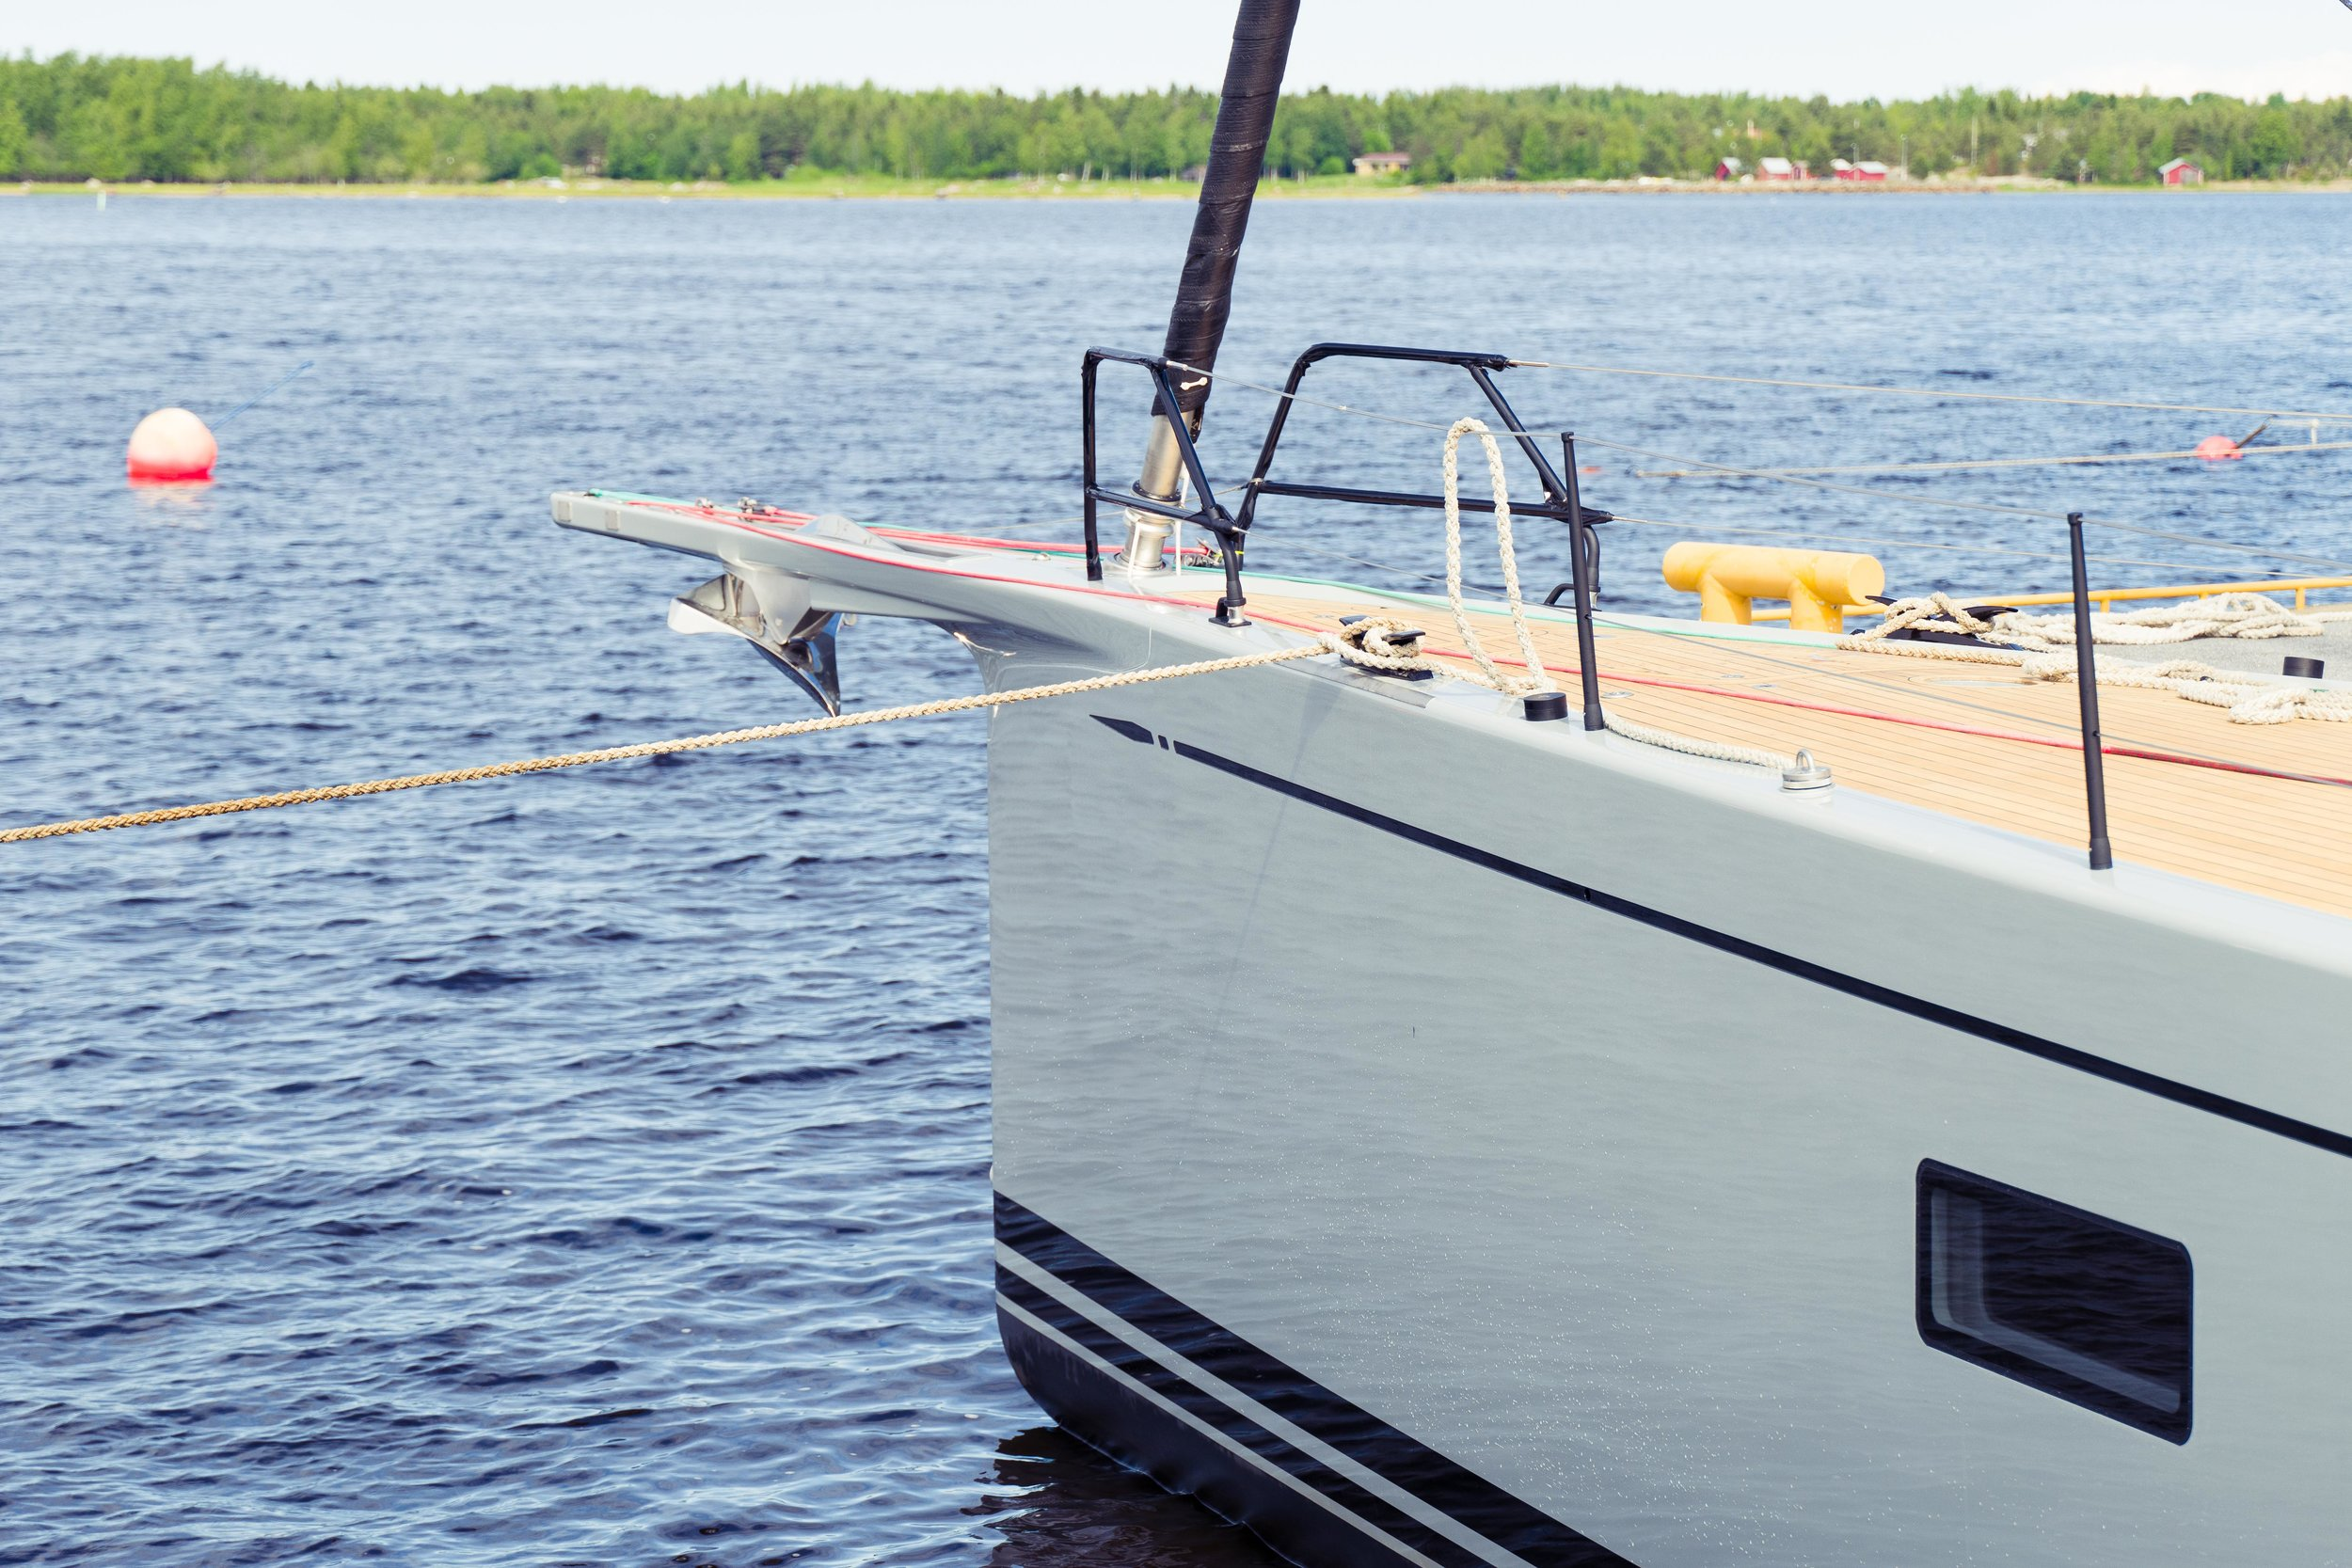 A brand spanking new Swan 78, will you own or lease your next boat? Photo by Daniel Novello